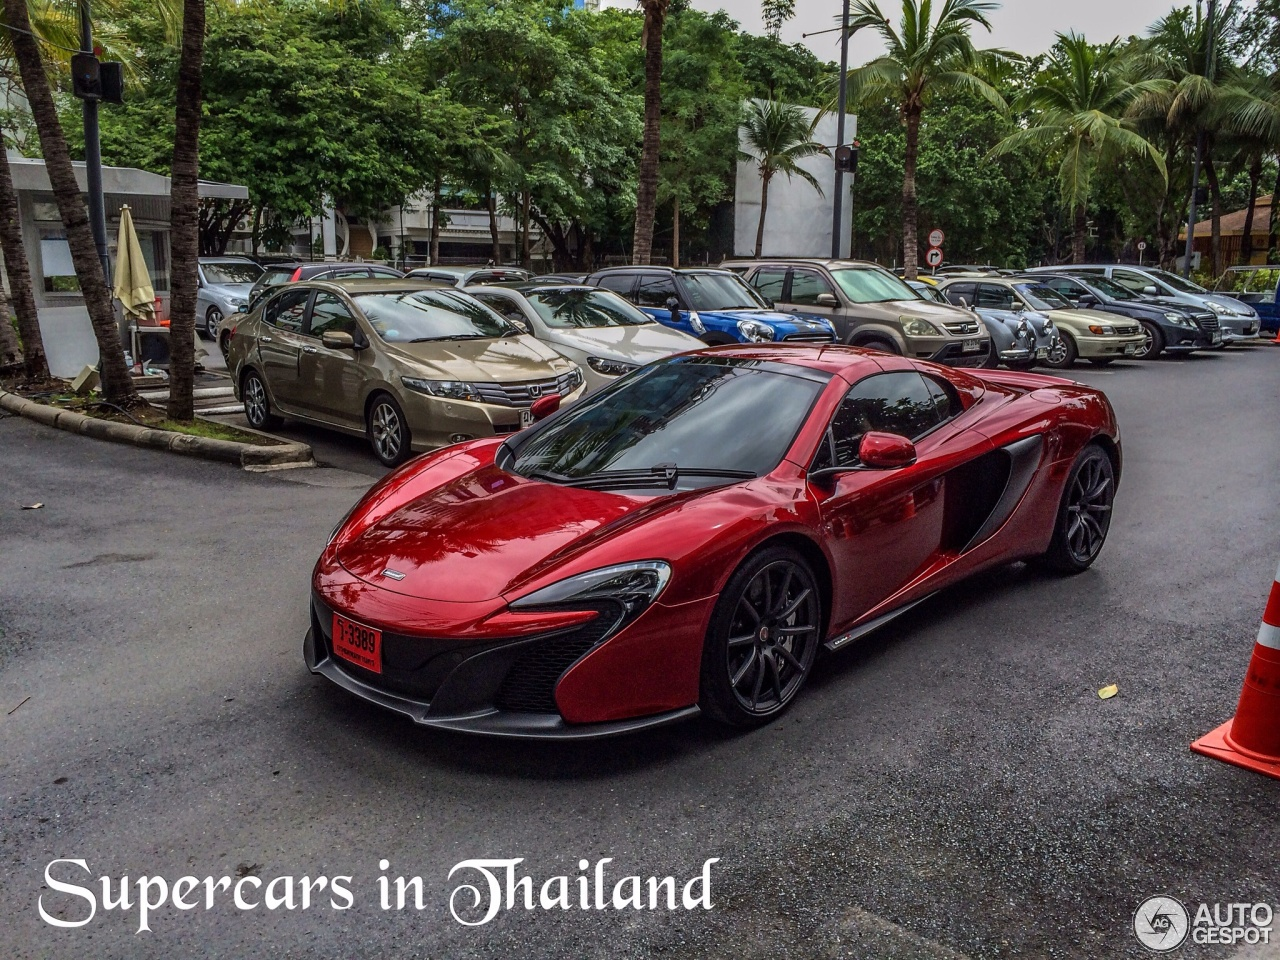 214306 together with 04 further Mclaren 12c as well Mansory Bentley Continental Gt And Gtc Kit as well Incroyable Couleurs Carrosseries Supercars. on mansory mclaren mp4 12c